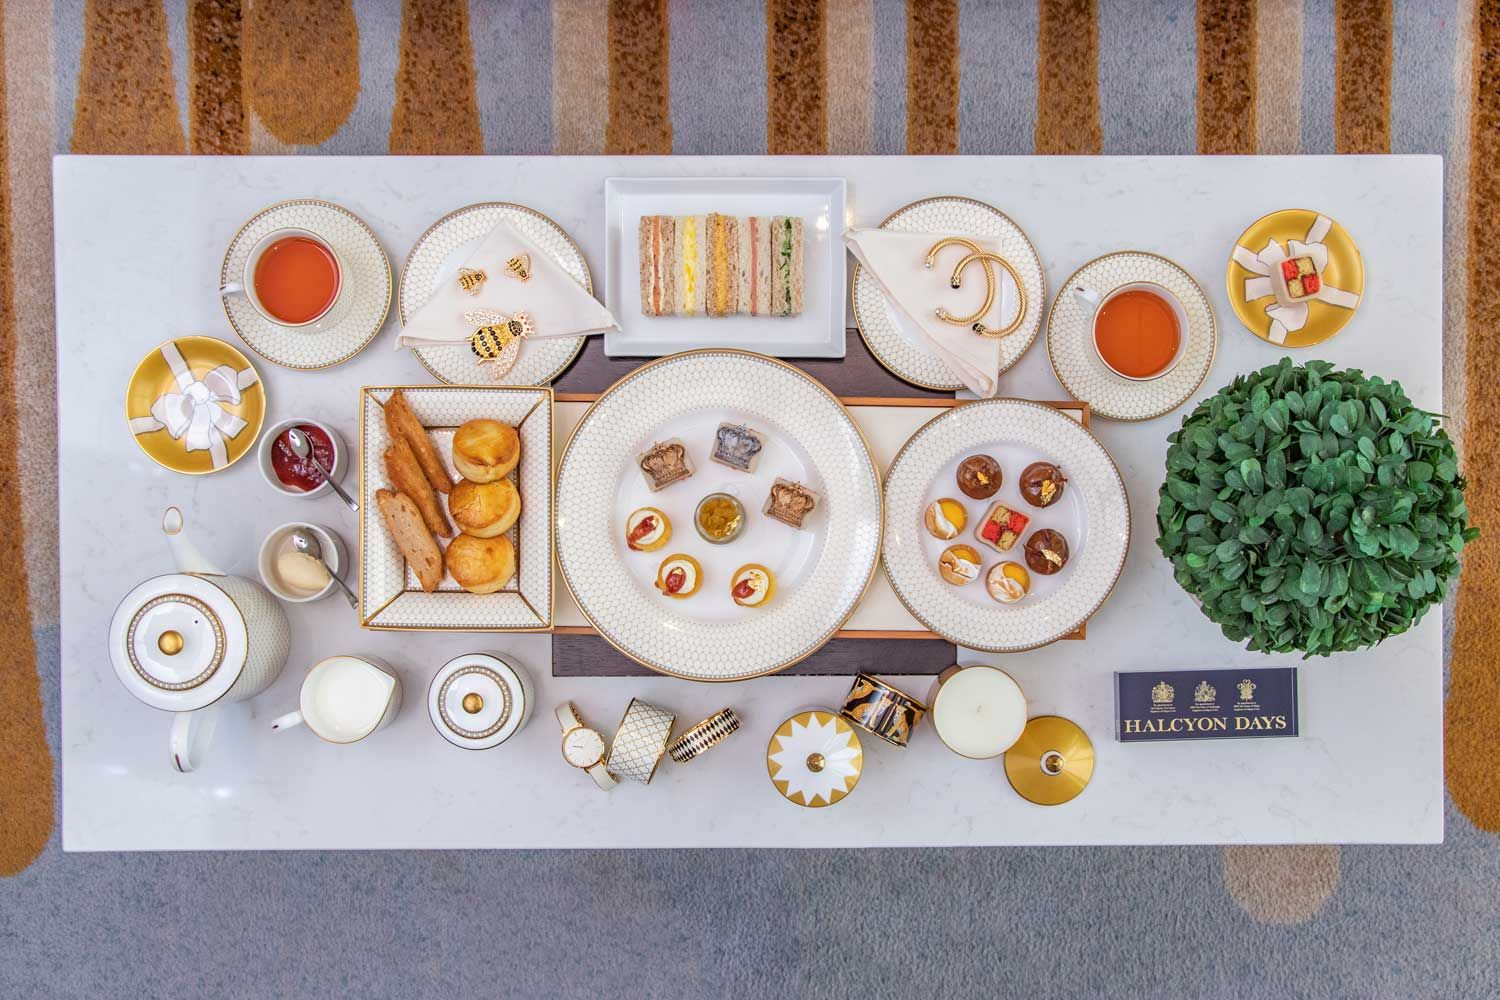 Why You'll Love This Halcyon Days-Inspired British Afternoon Tea